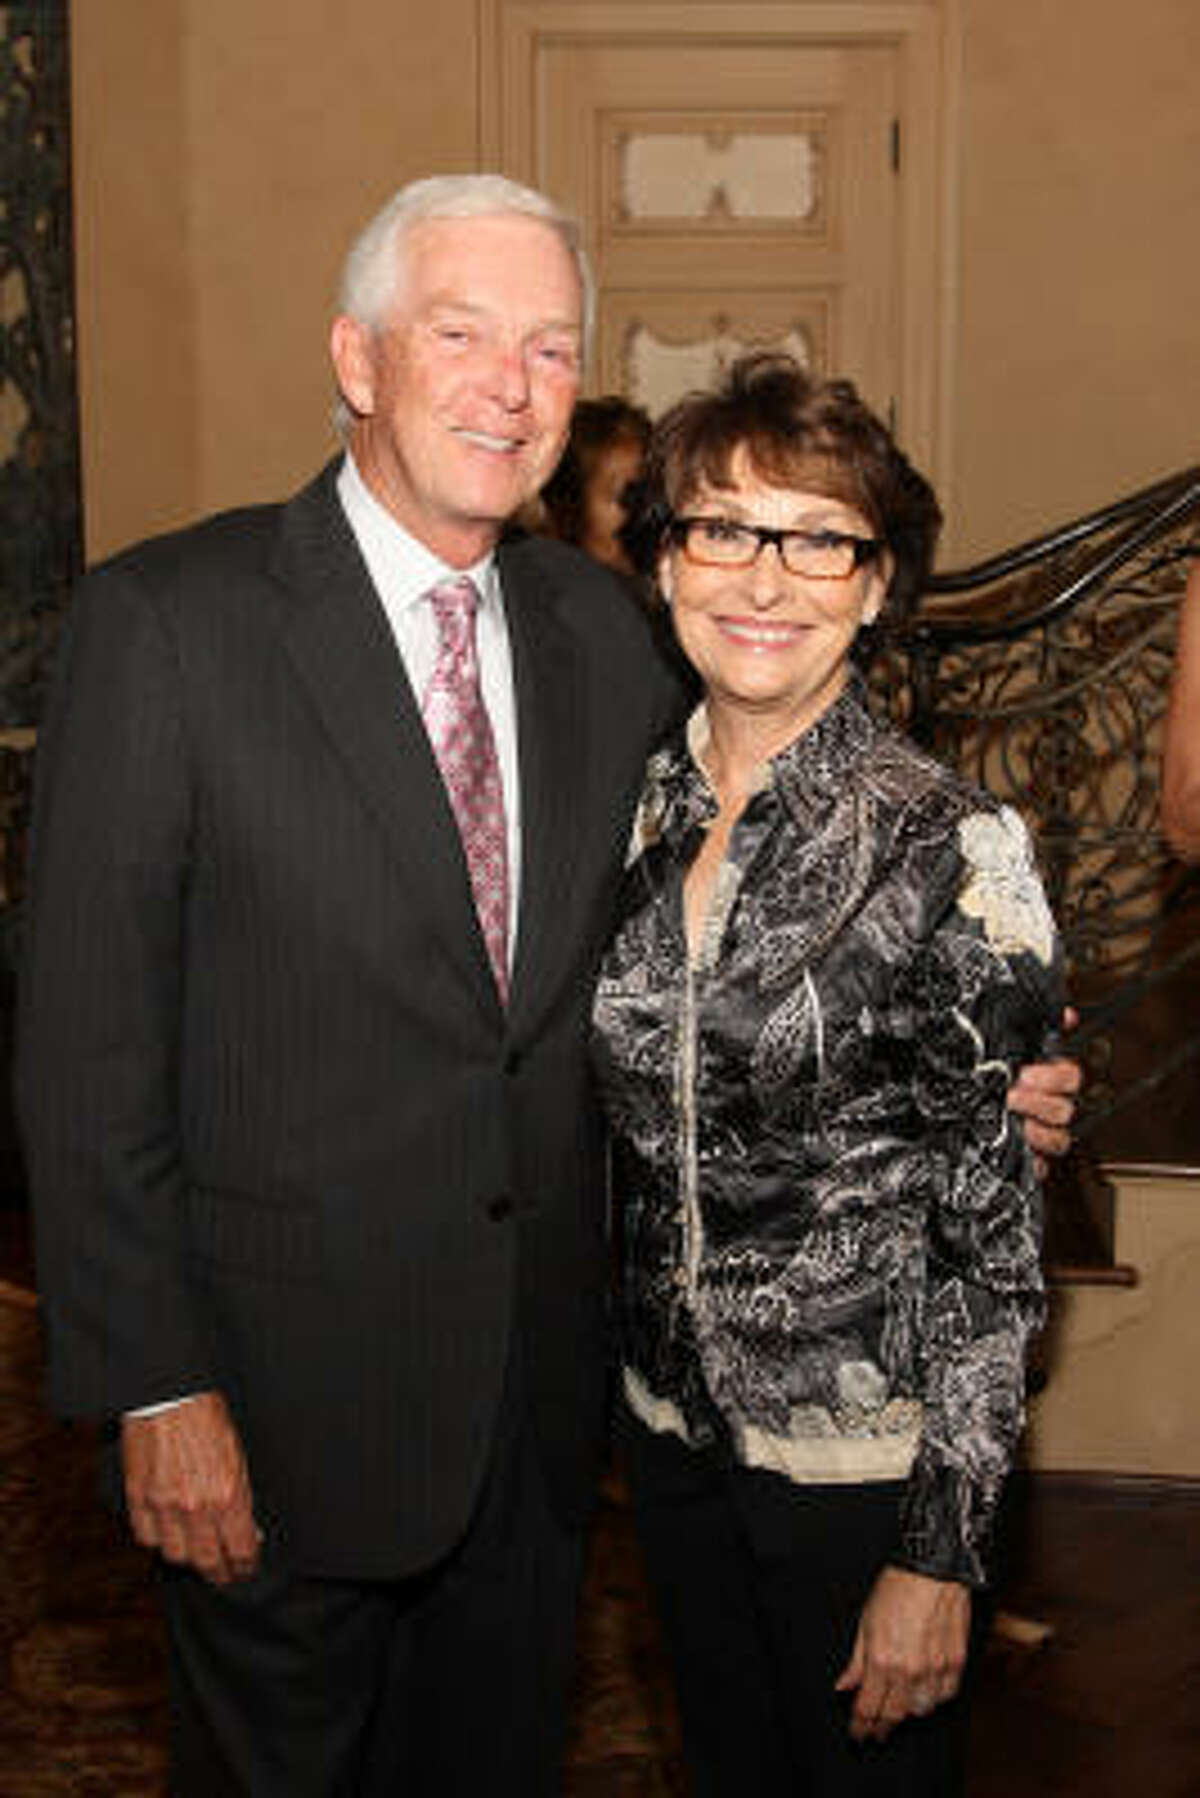 Jerry and Linda Strickland at the Home Safe Home event Oct. 29 at the home of Sue and Lester Smith benefiting Aid to Victims of Domestic Abuse.